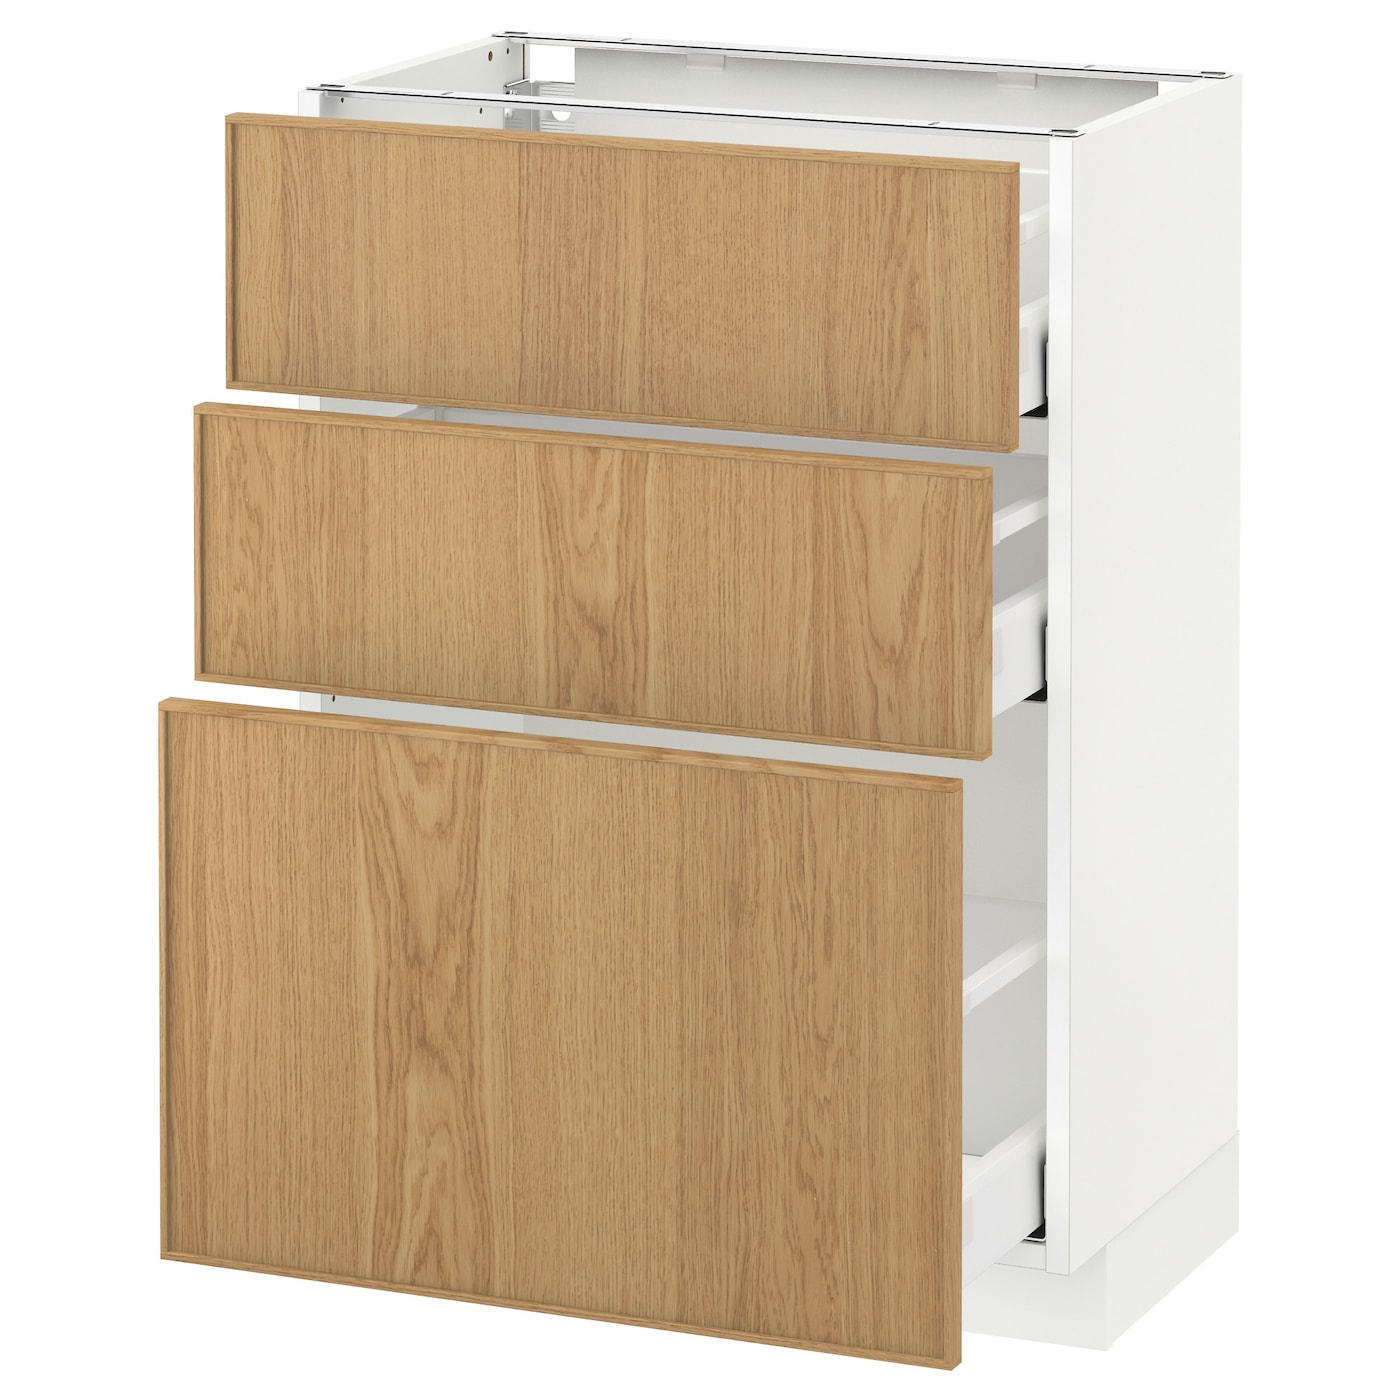 ikea oak kitchen cabinets metod maximera base cabinet with 3 drawers white ekestad 4585